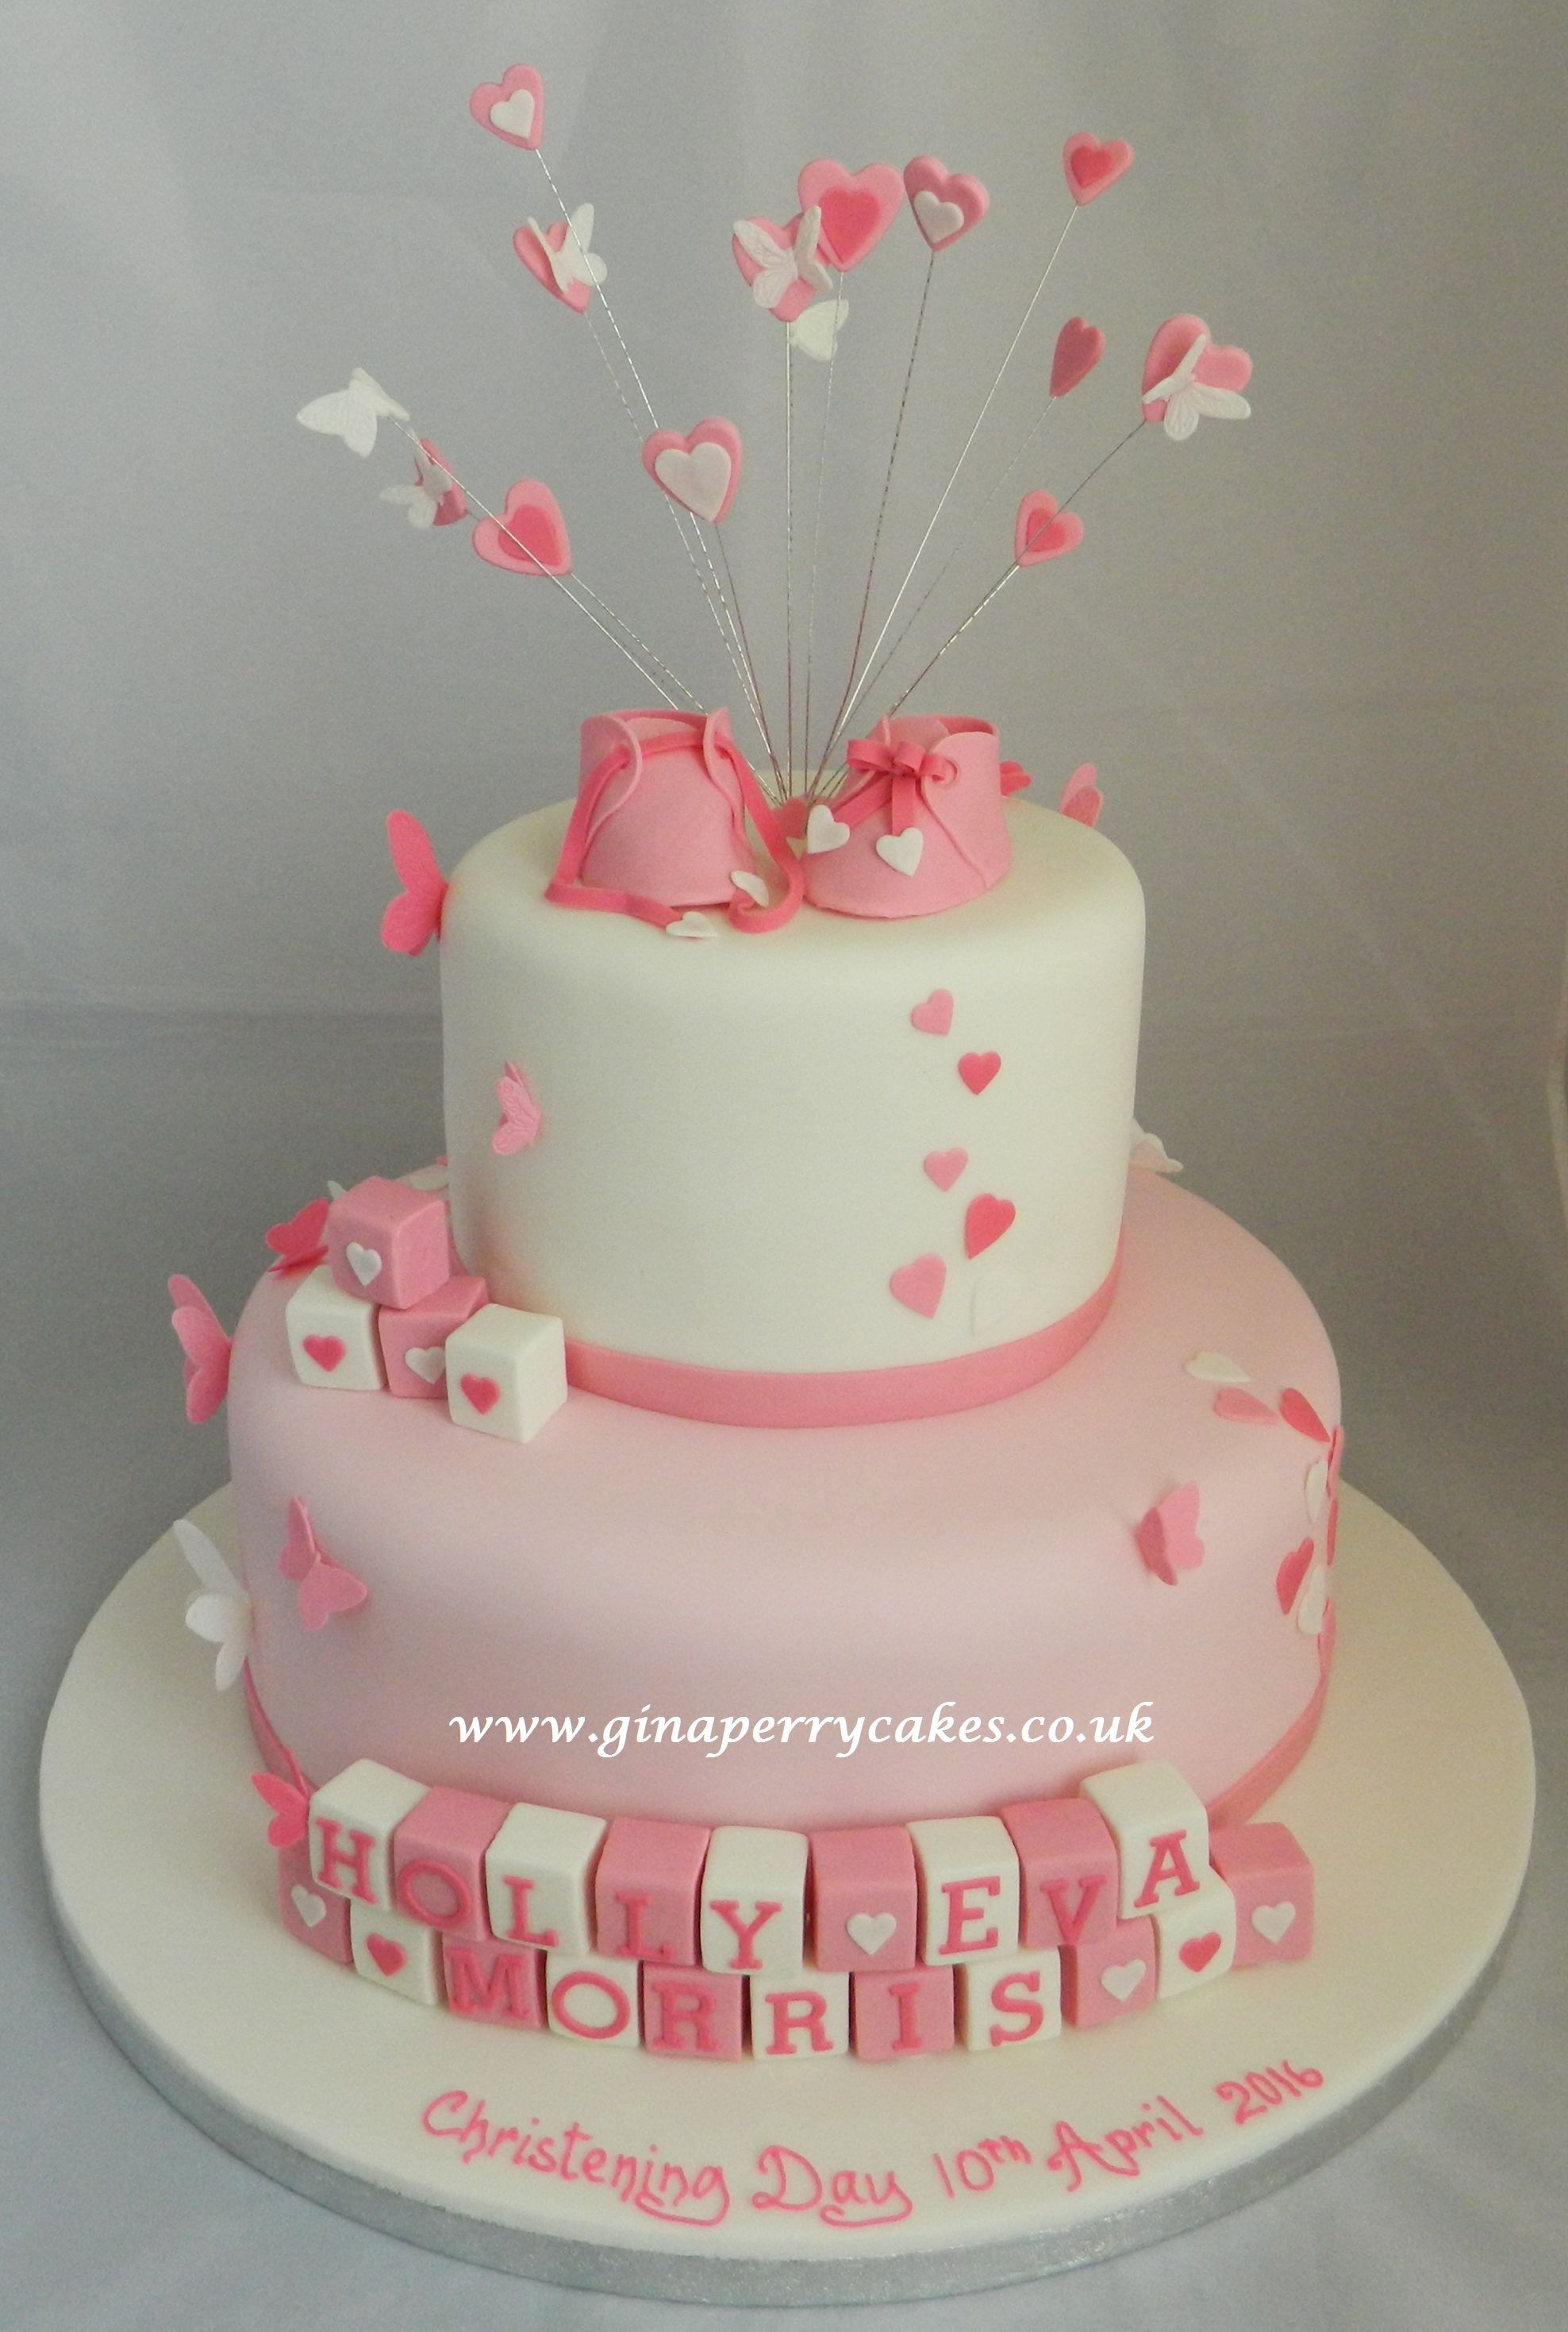 Christening Cake For A Baby Girl Withbutterflies Hearts